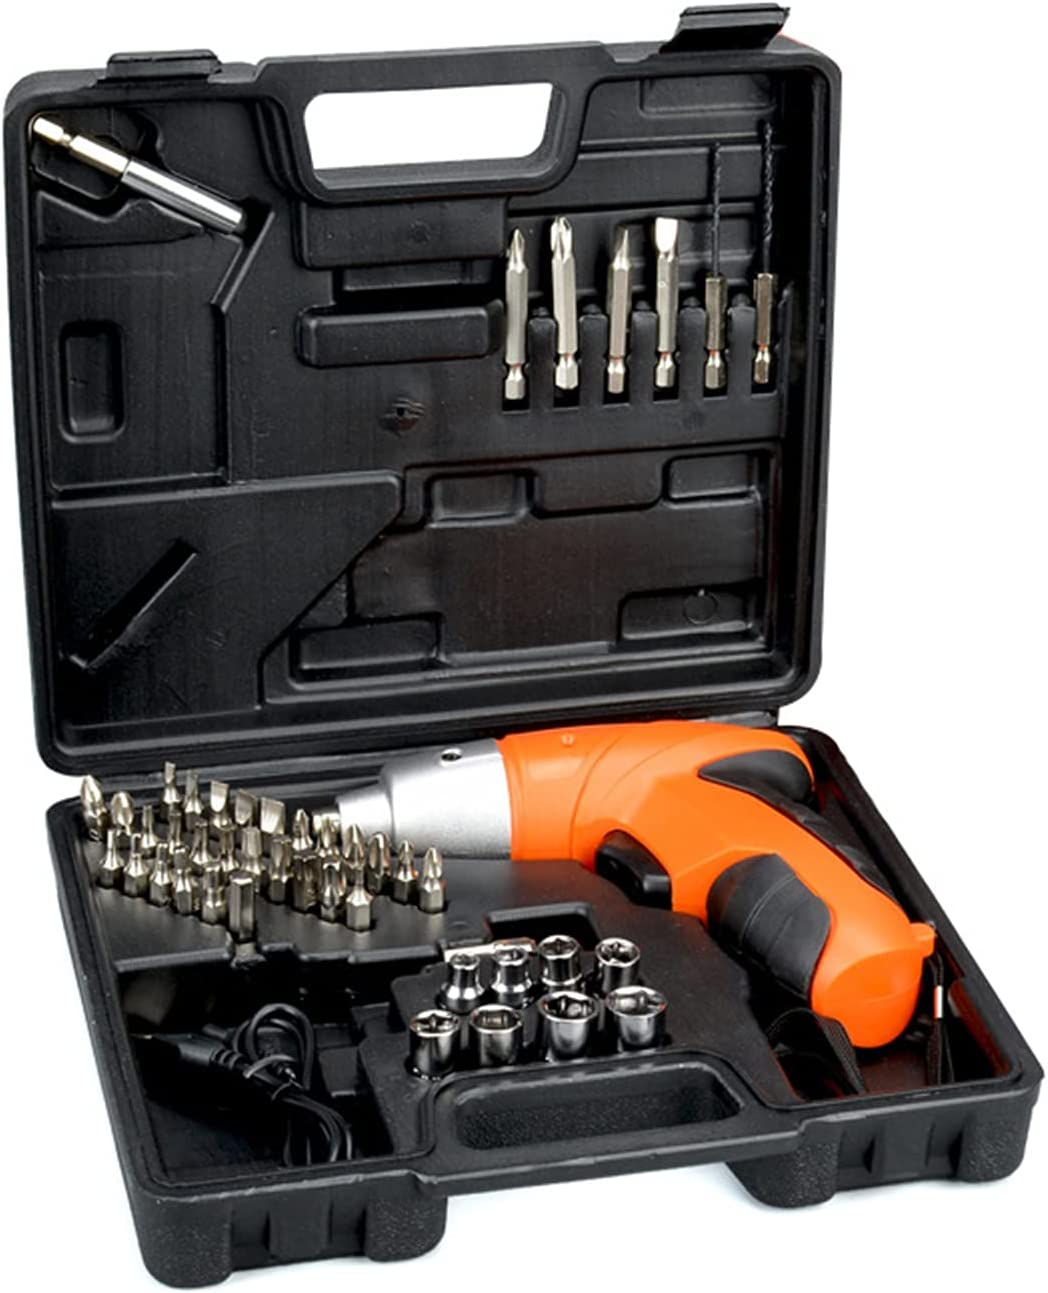 Abimy 45 in 1 Luxury Power Screwdriver Set Cordles Screwdrive New Orleans Mall Electric